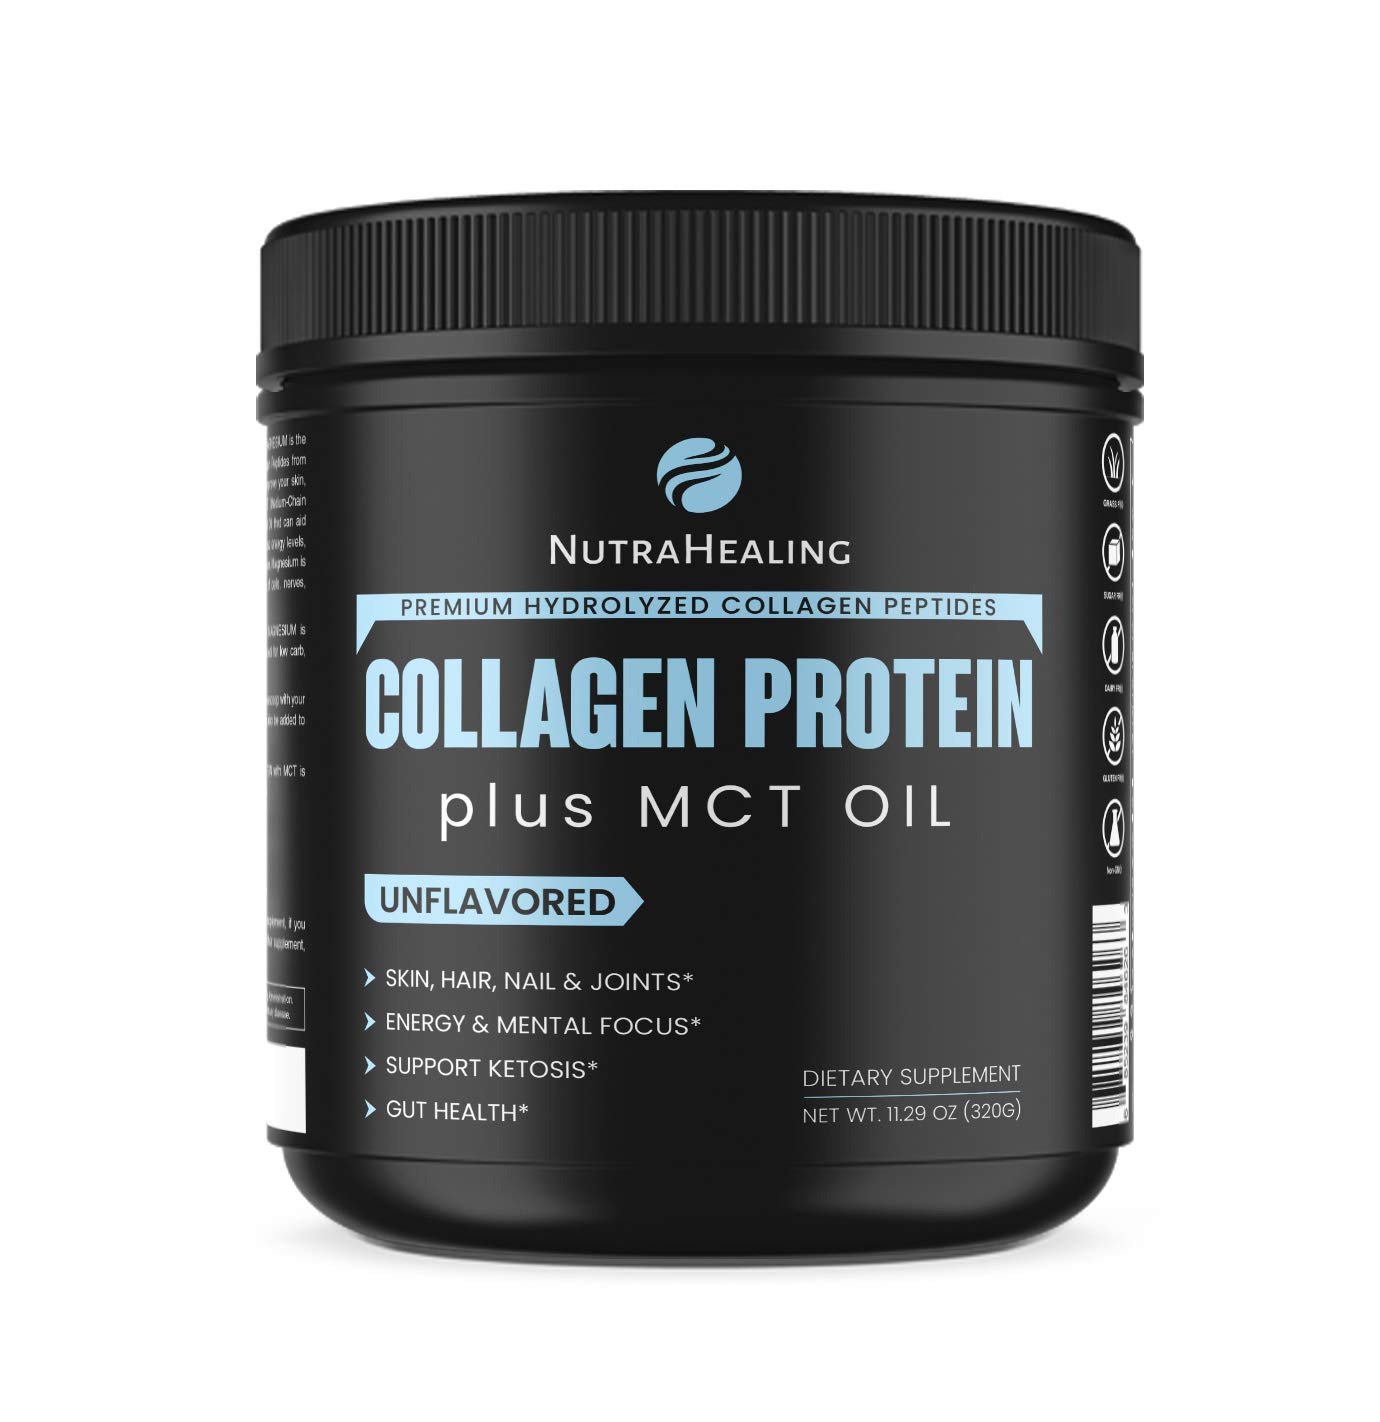 Premium Hydrolyzed Collagen Protein powder + MCT & Magnesium. Essential Amino Acids - Sugar free, Gluten Free Dairy free & Non-GMO - muscle Recovery - ideal for Low Carb, Paleo & Keto Diet- Unflavored by Nutrahealing